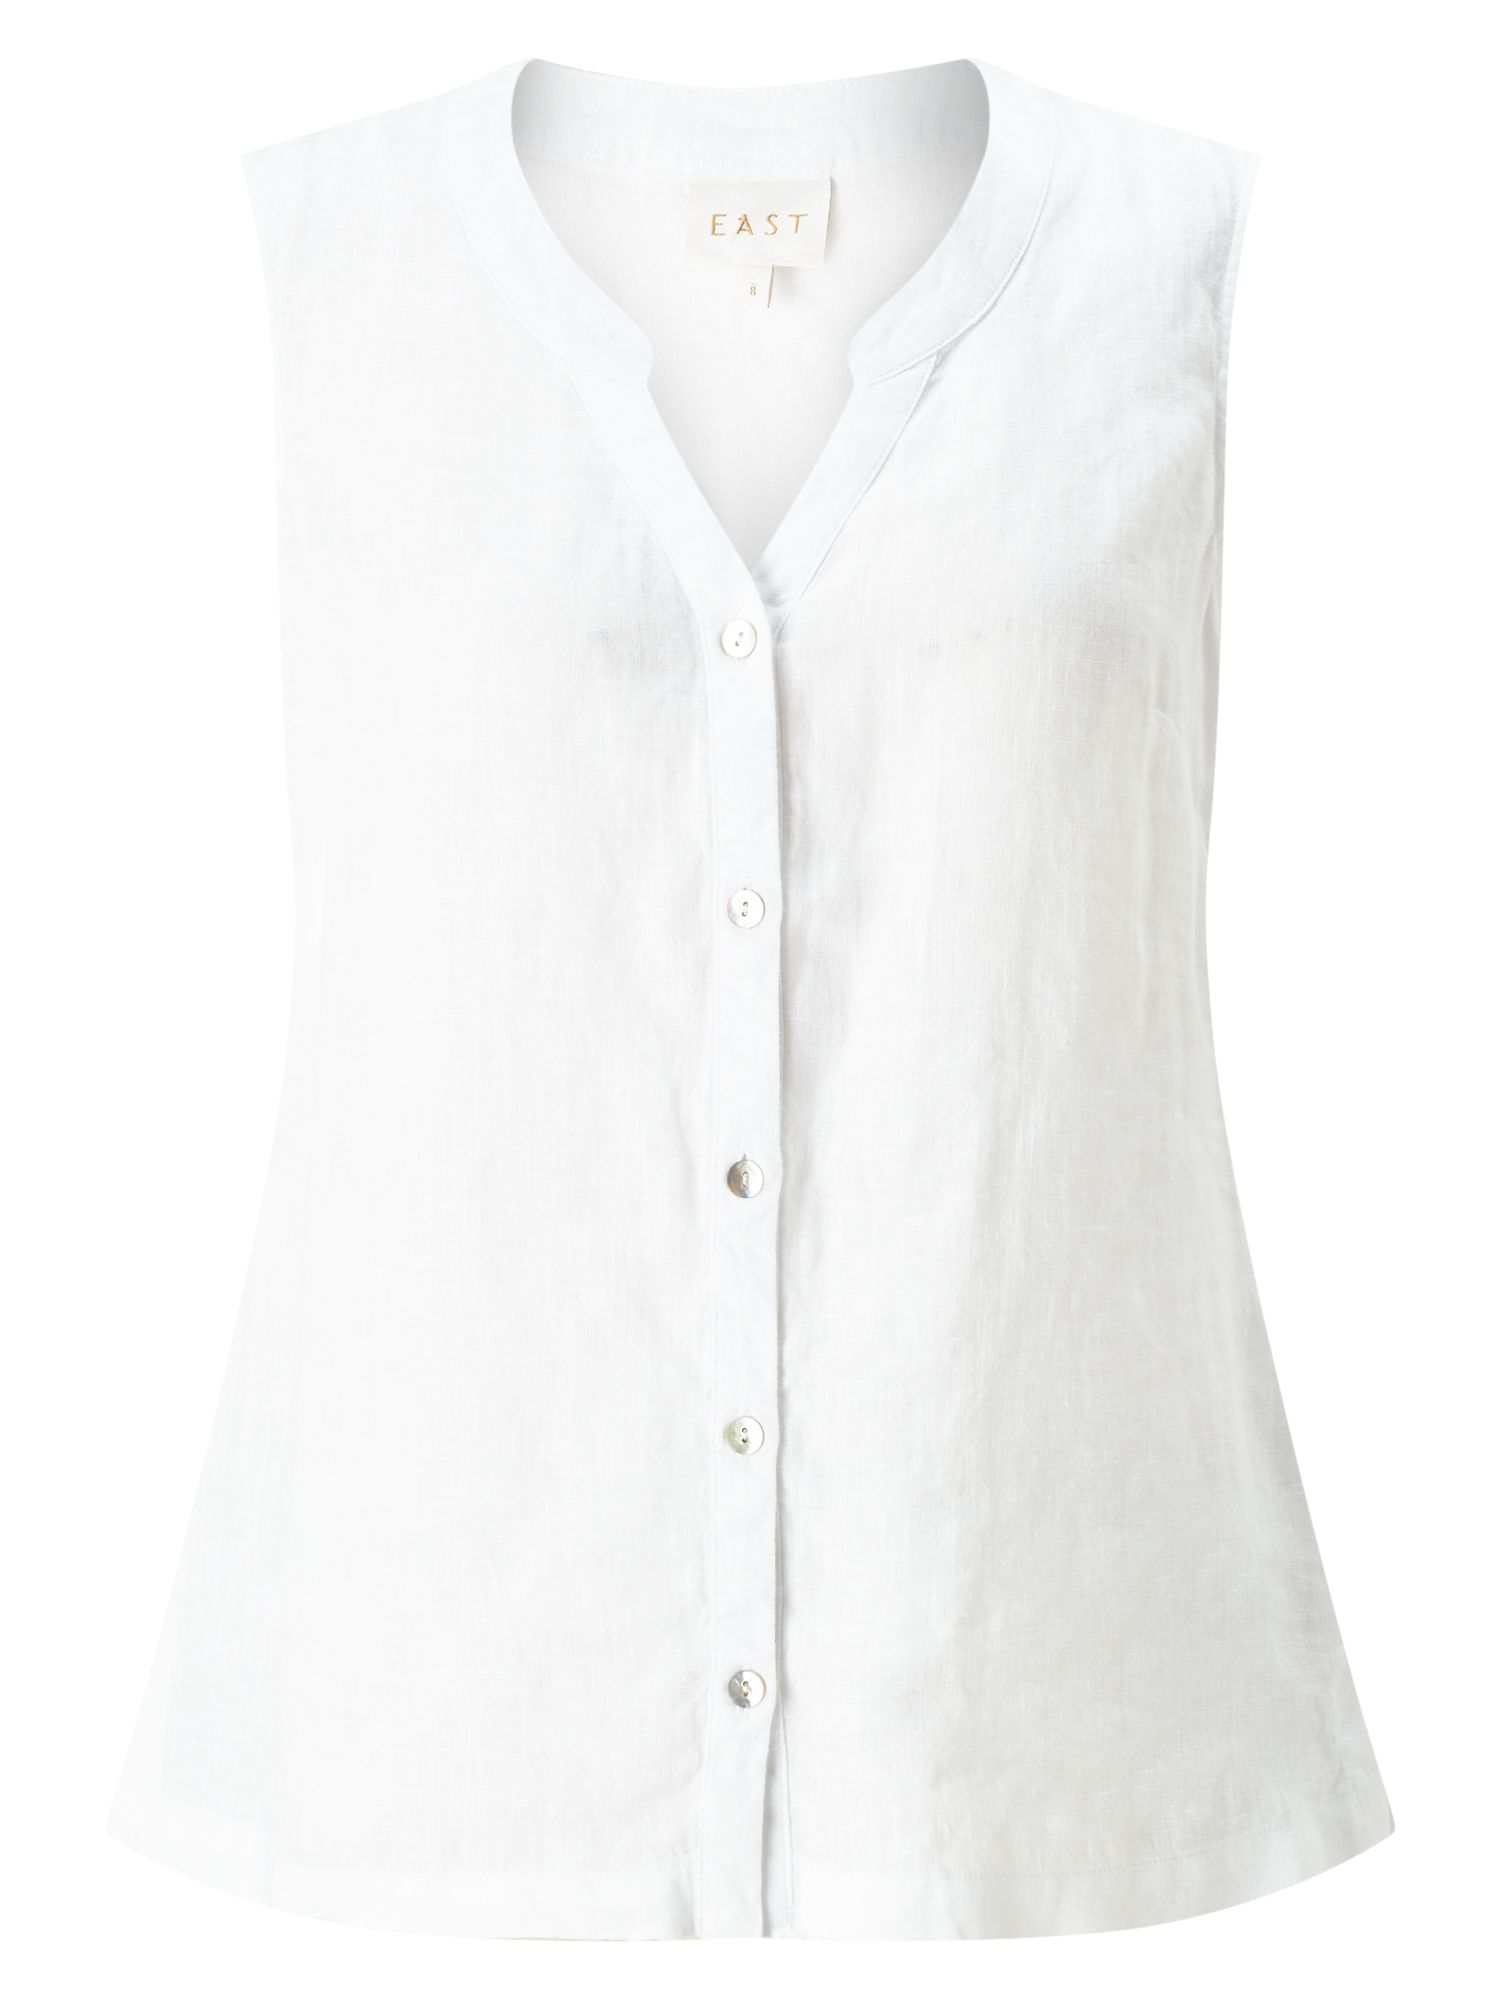 East Linen Sleeveless Shirt, White